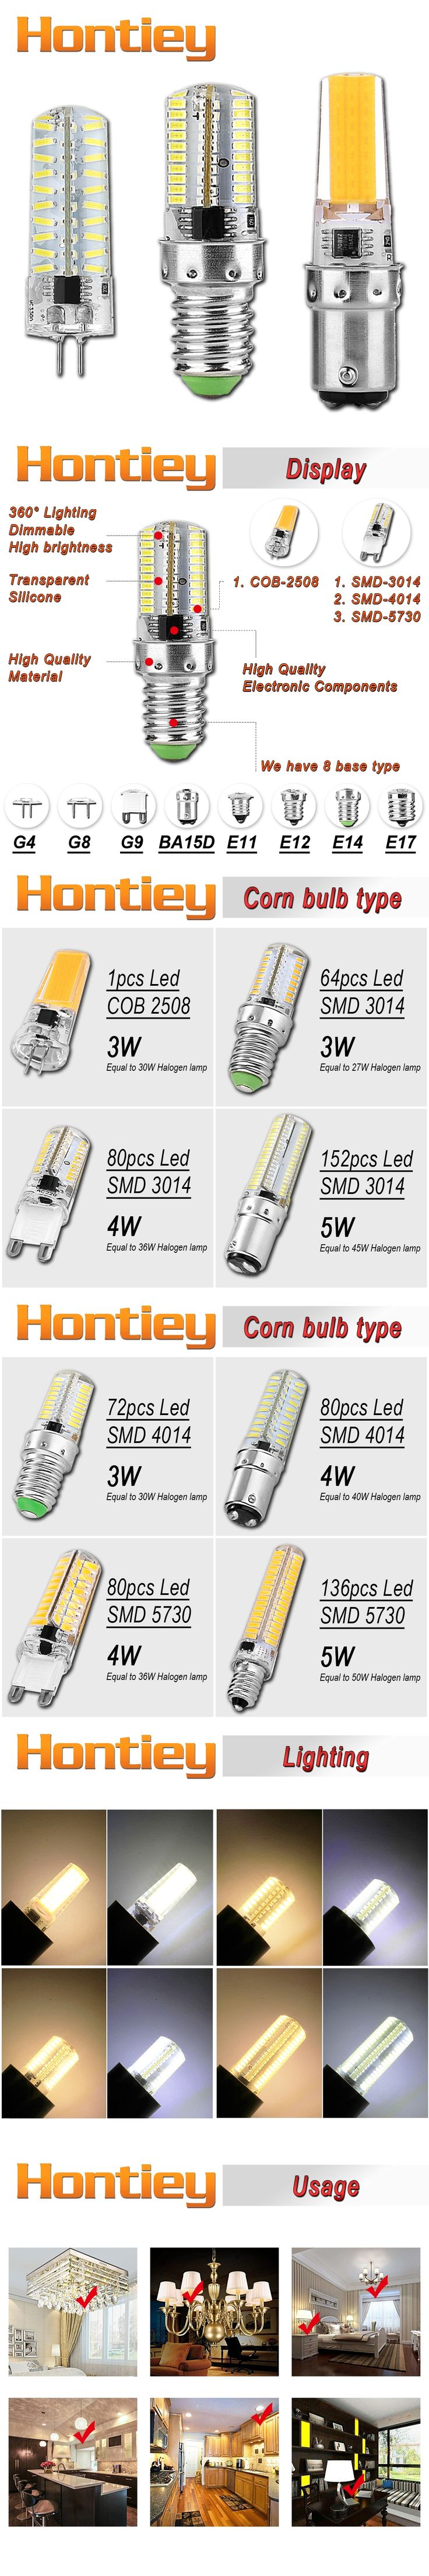 Hontiey LED Silicone Corn bulb Warm Pure White light 110V 220V G4 G8 G9 E11 E14 E17 BA15D Replace 20-50W Halogen lamp Chandelier